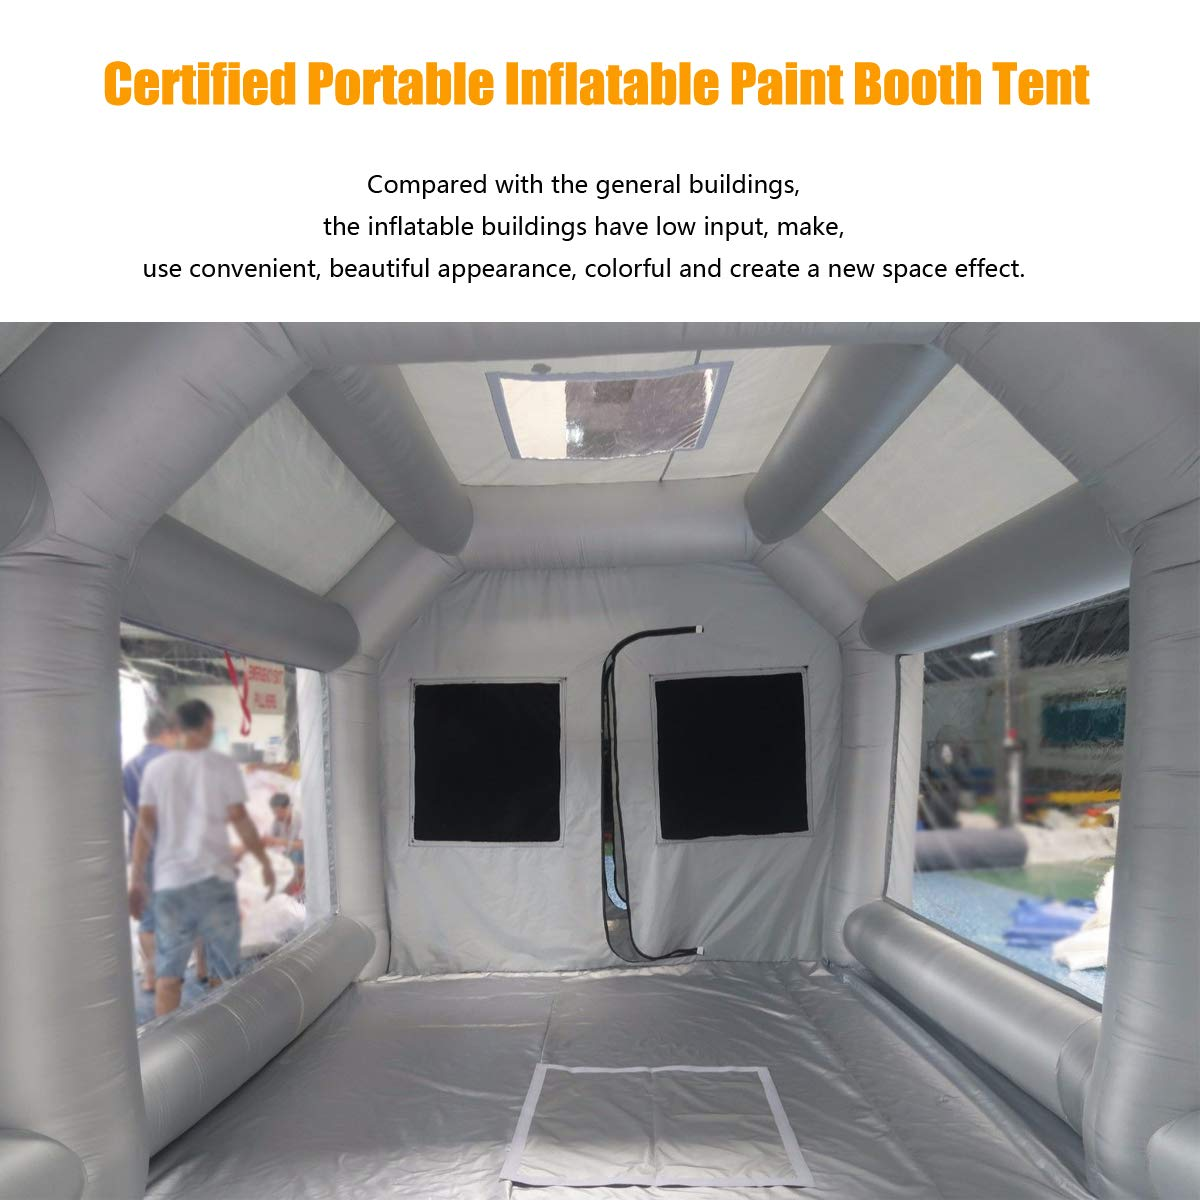 4x2.5x2.2M Inflatable Spray Booth Tents Inflatable Paint Inflatable Car Parking Tent Workstation